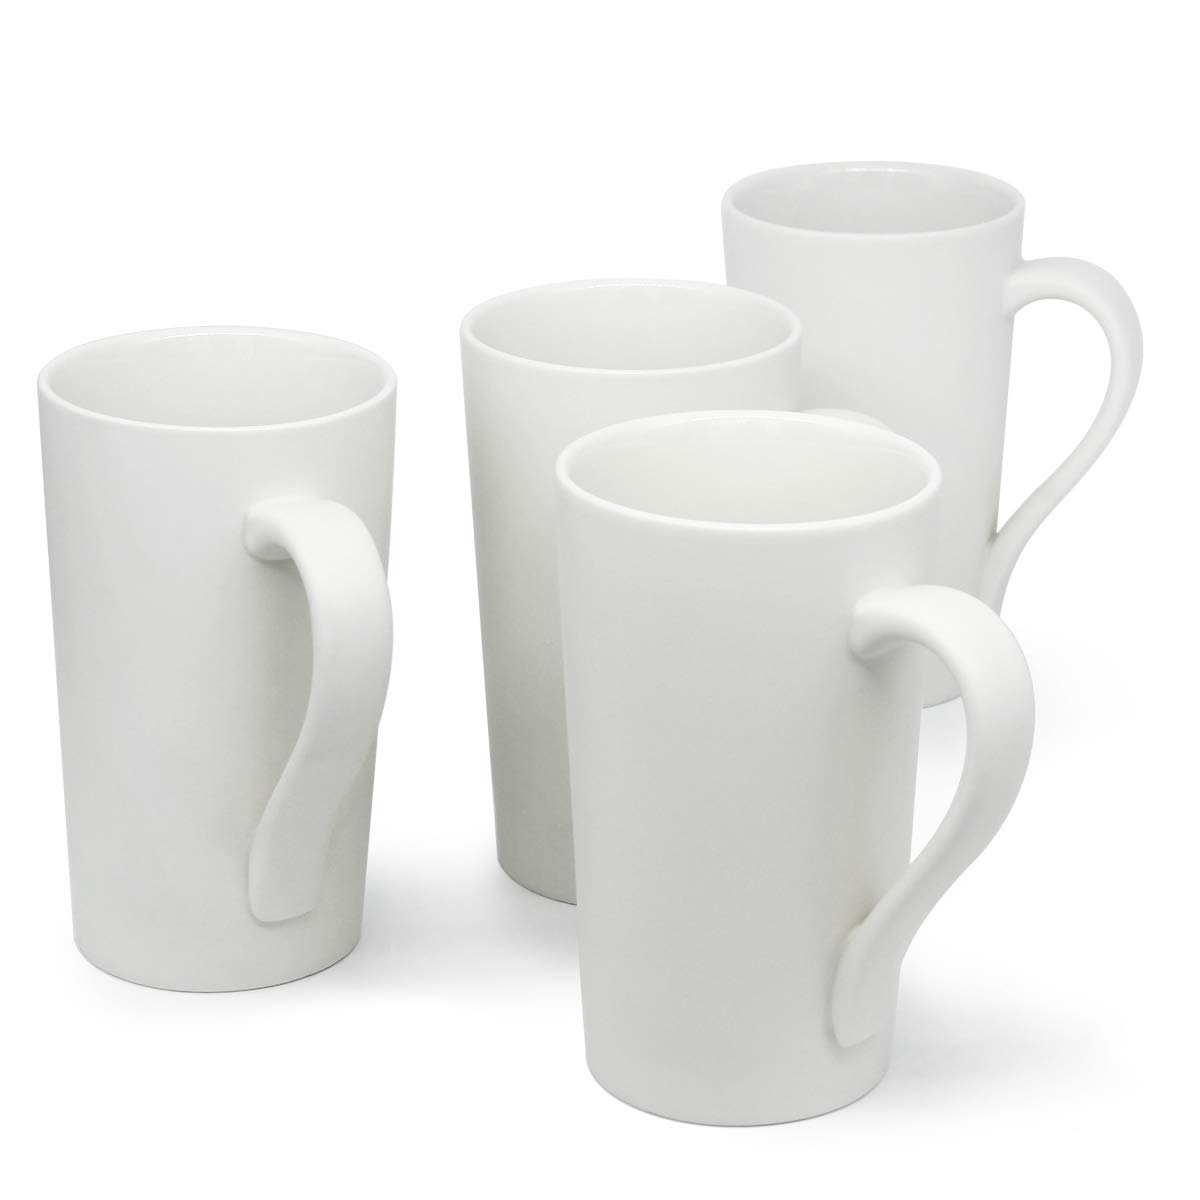 20 OZ Large Ceramic Coffee Mugs, Smilatte M007 Plain Blank Tall Ceramic Cup with Handle for Dad Men, Set of 4, White by Smilatte (Image #2)